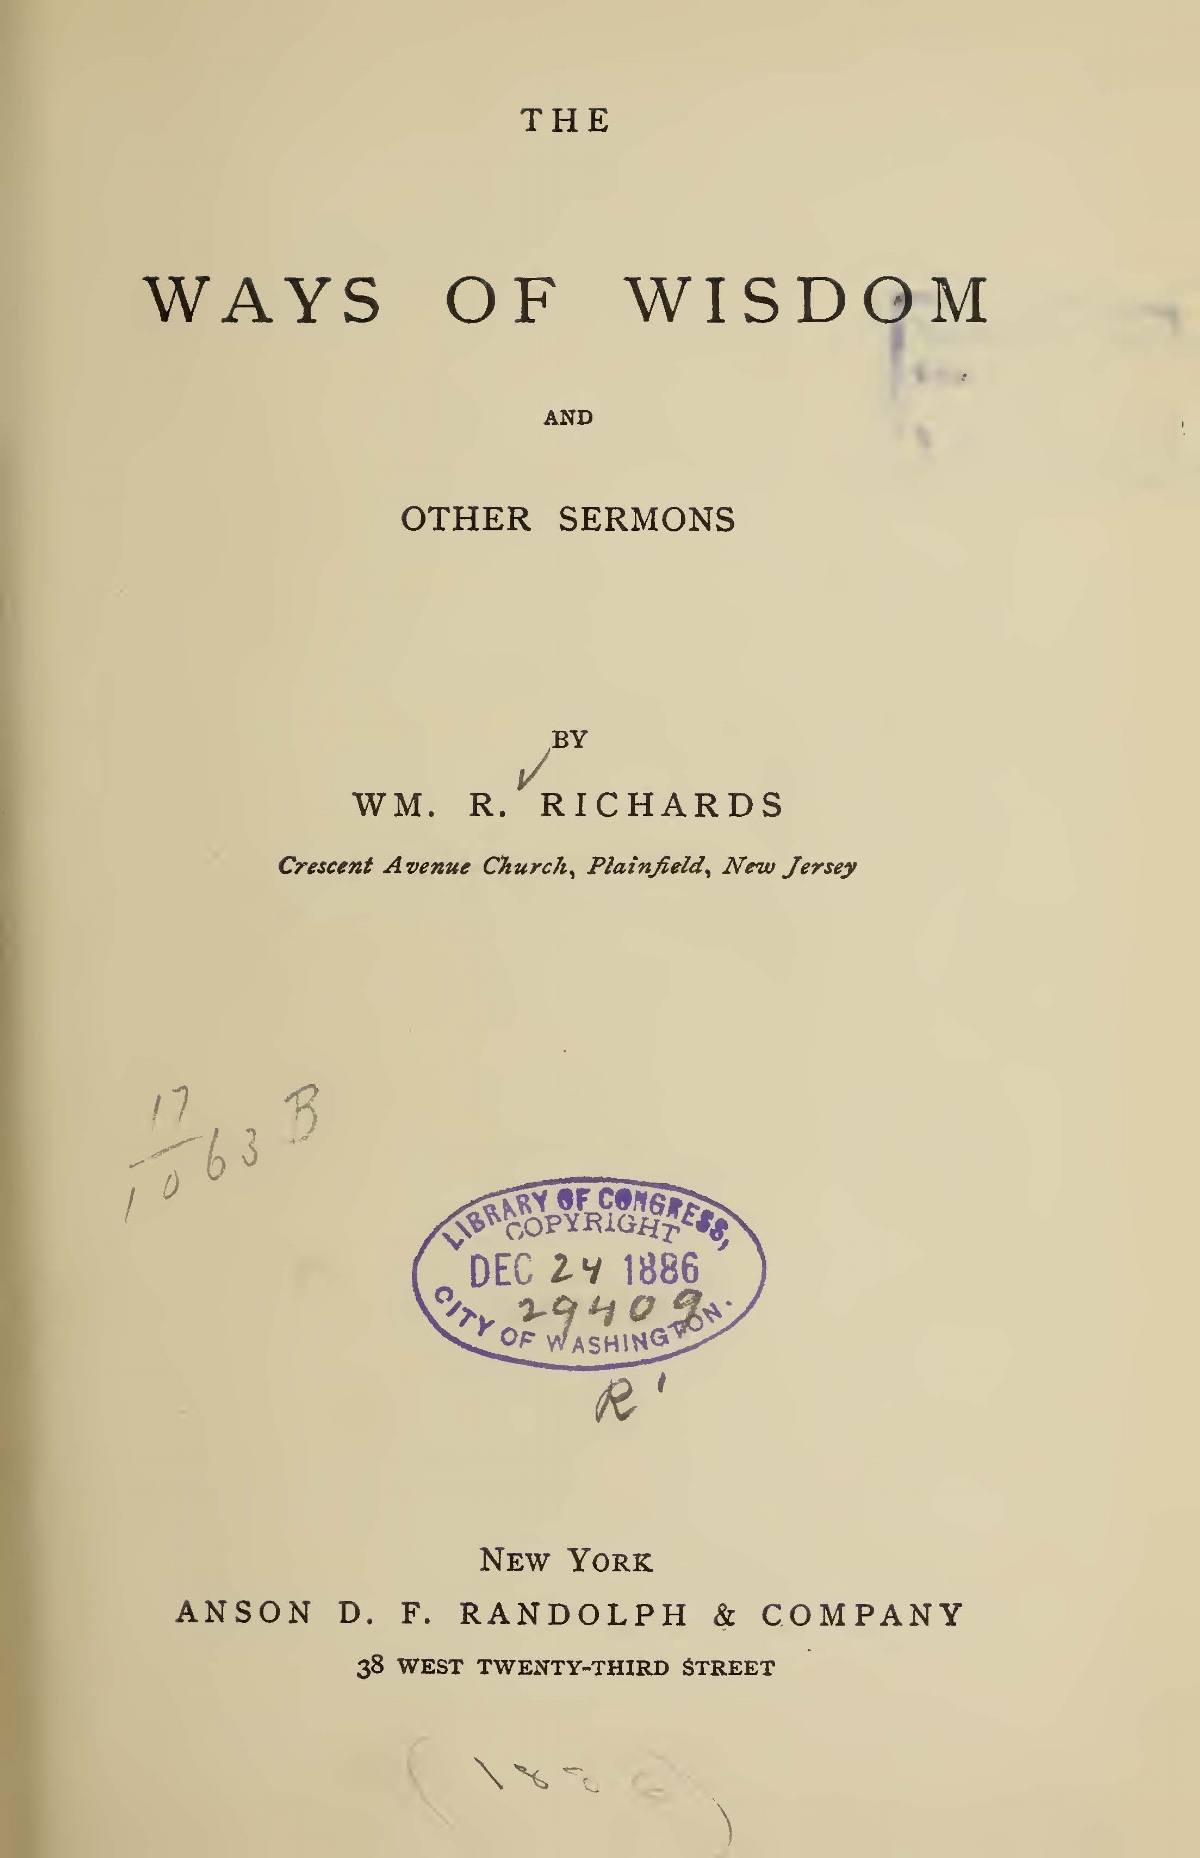 Richards, William Rogers, The Ways of Wisdom and Other Sermons Title Page.jpg